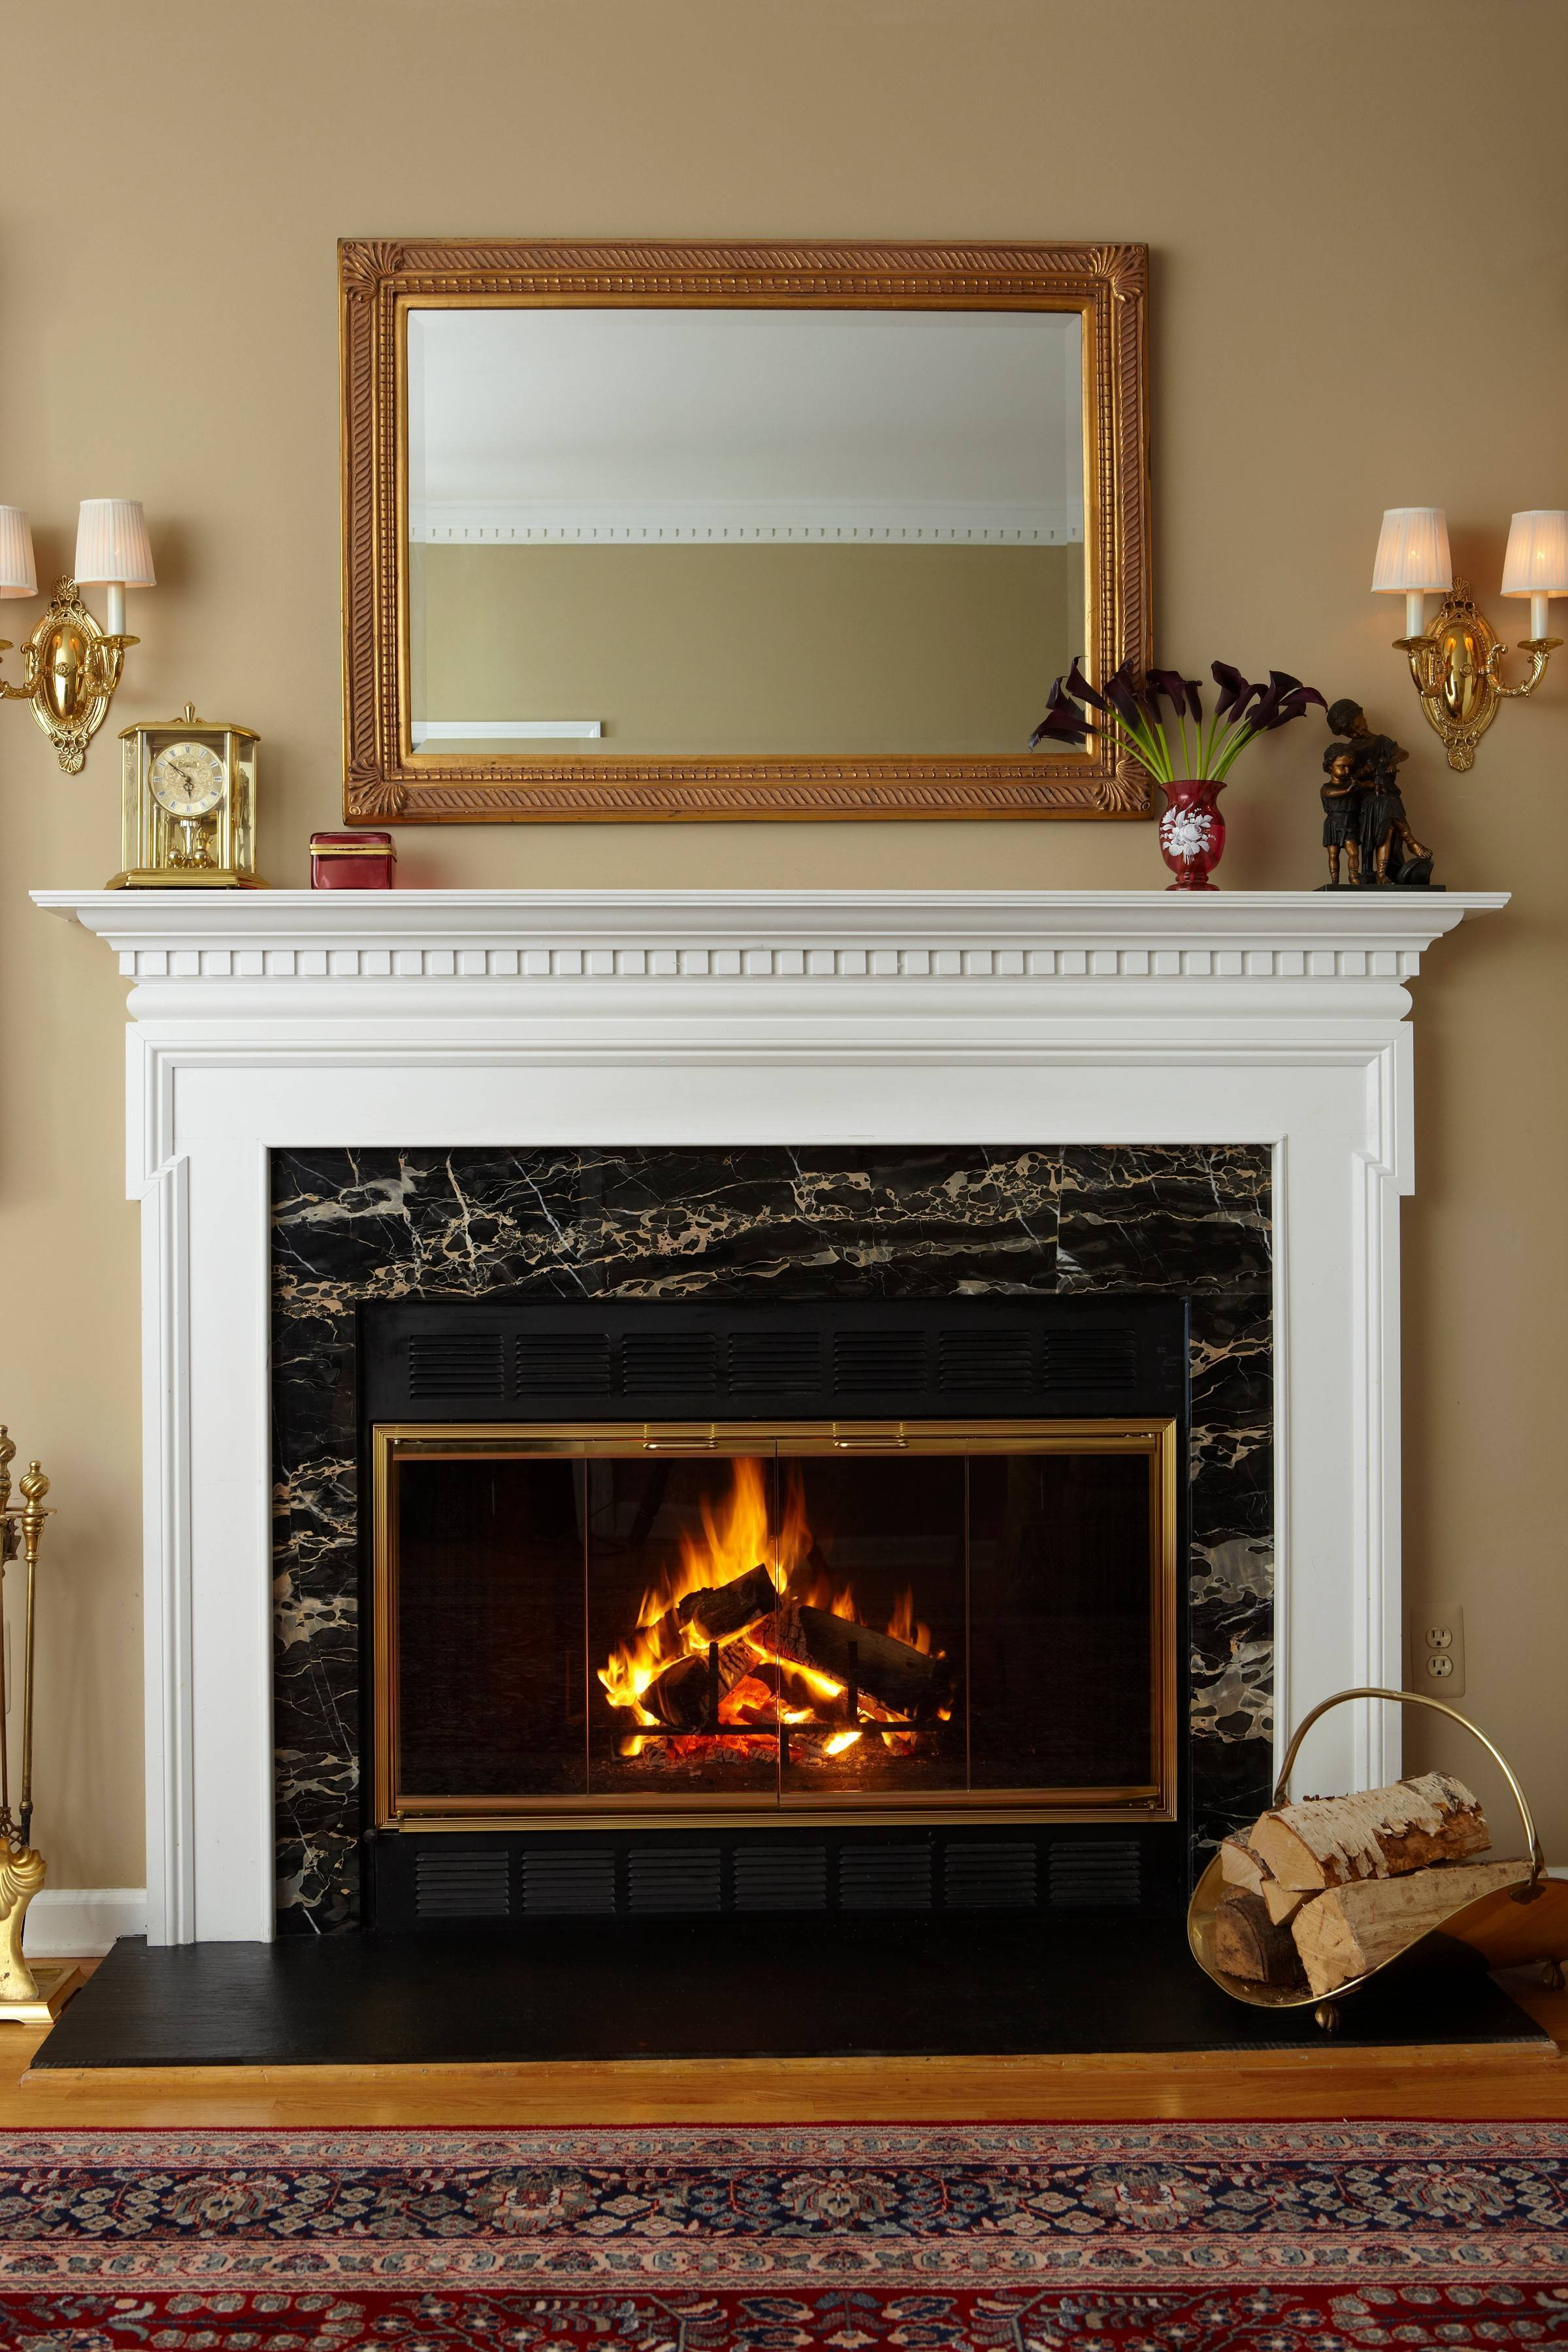 How to prevent house fires this holiday season